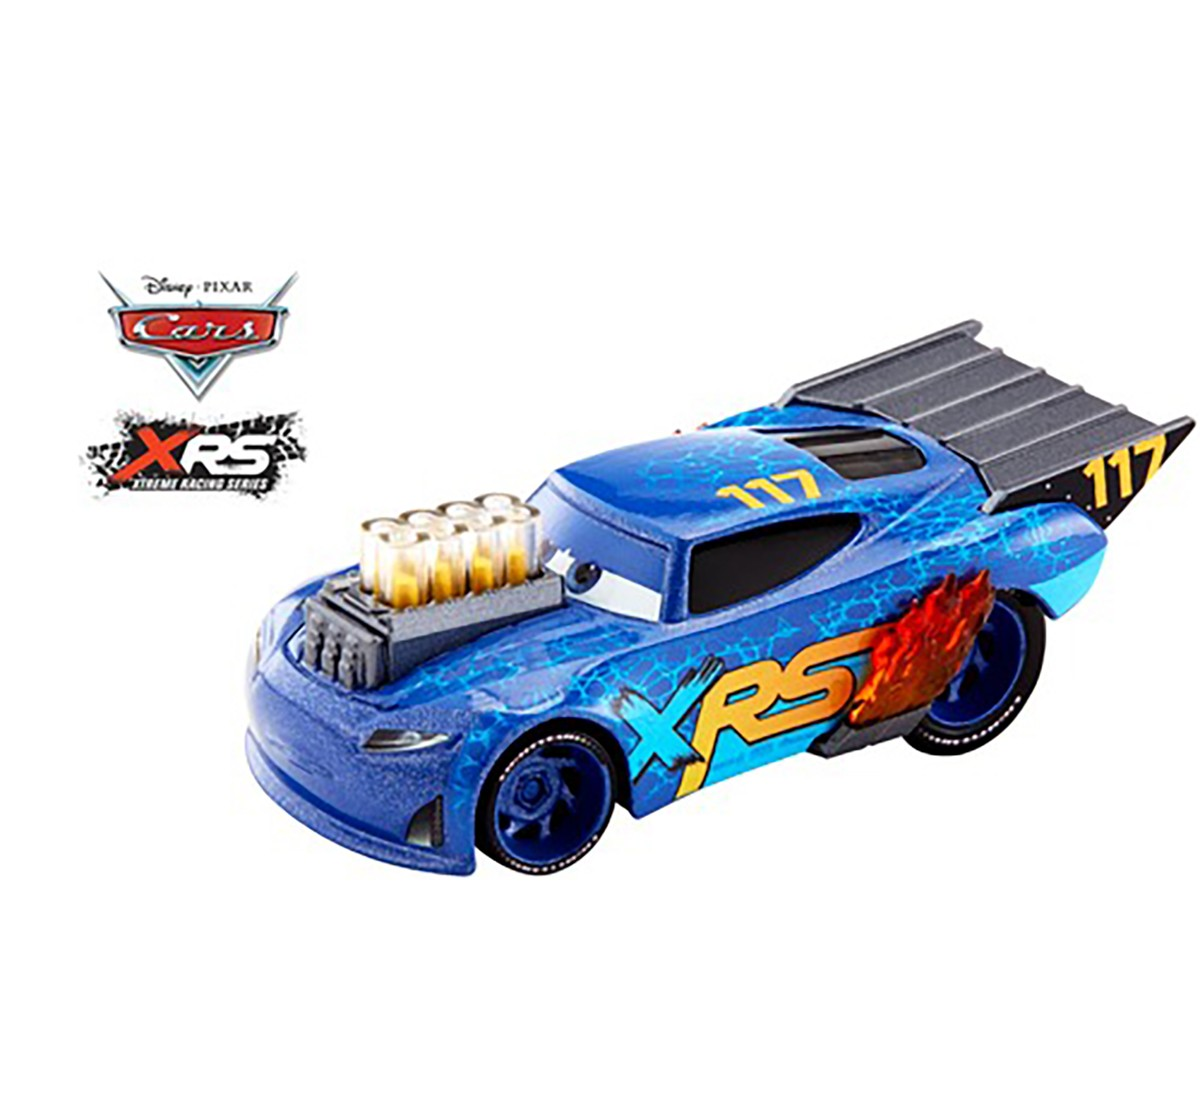 Hotwheels Cars Xrs 1:55 Assorted Vehicles for Kids age 3Y+